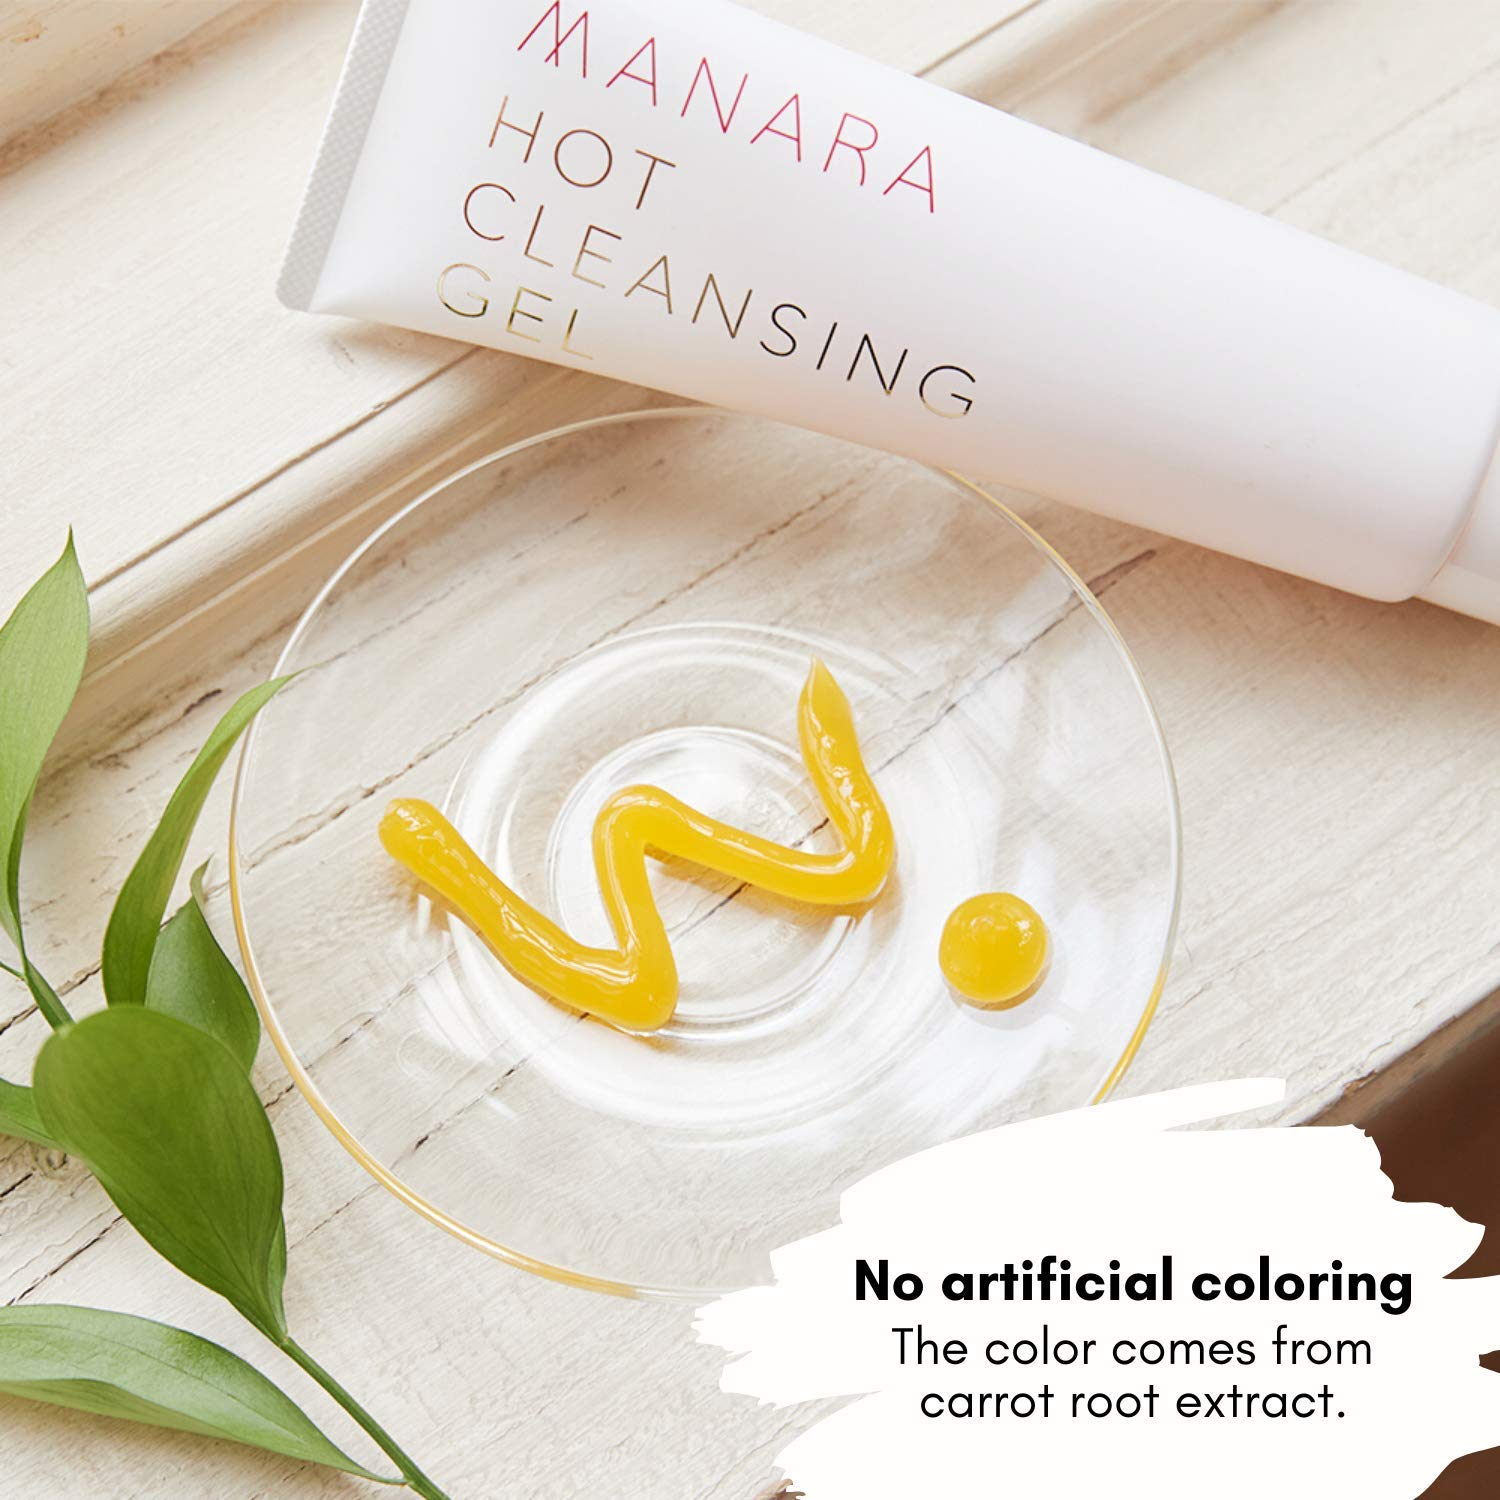 MANARA Hot Cleansing Gel, Facial Cleanser for Dry & Sensitive Skin, Hydrate & Clear Pores with Natural Ingredients, Paraben Free, Japanese cleanser 6.76 fl. oz.: Beauty